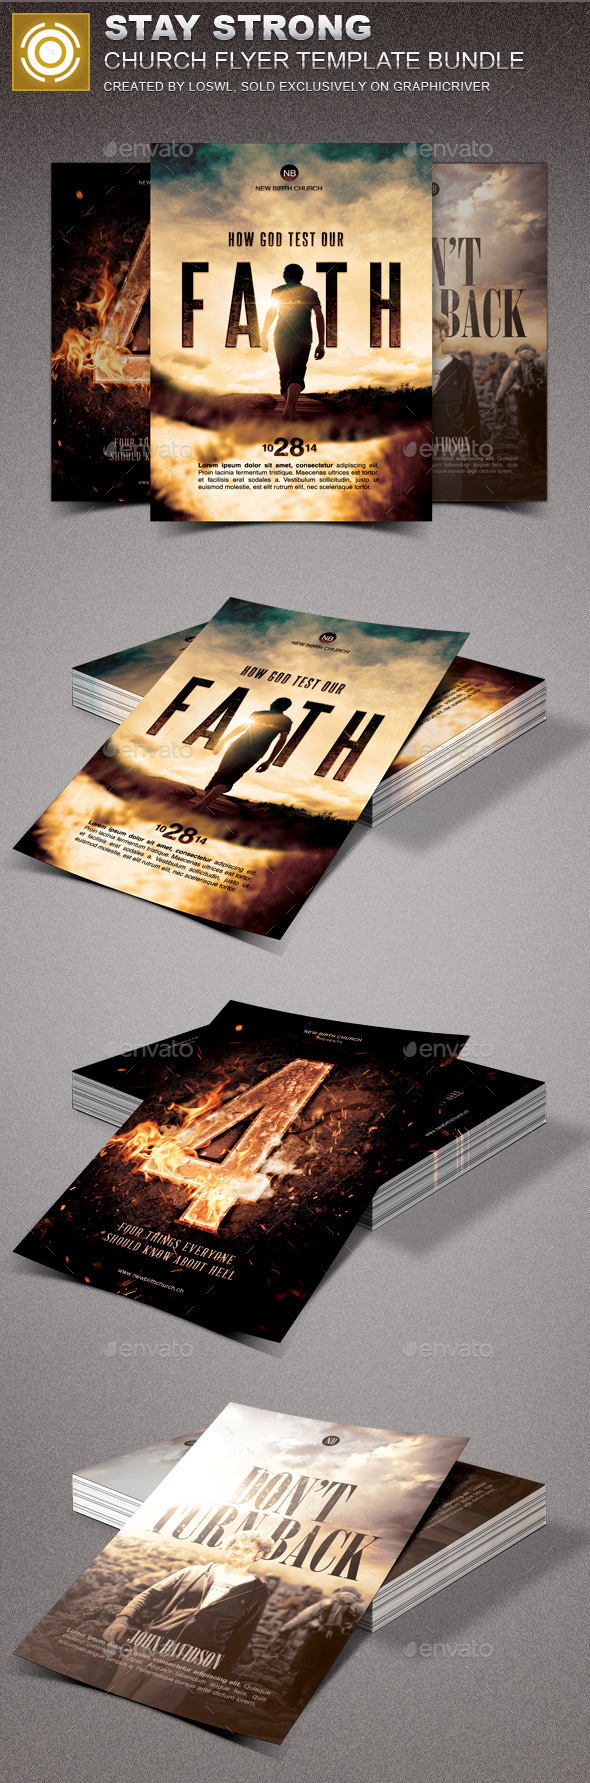 Stay Strong Church Marketing Flyer Bundle - Church Flyers